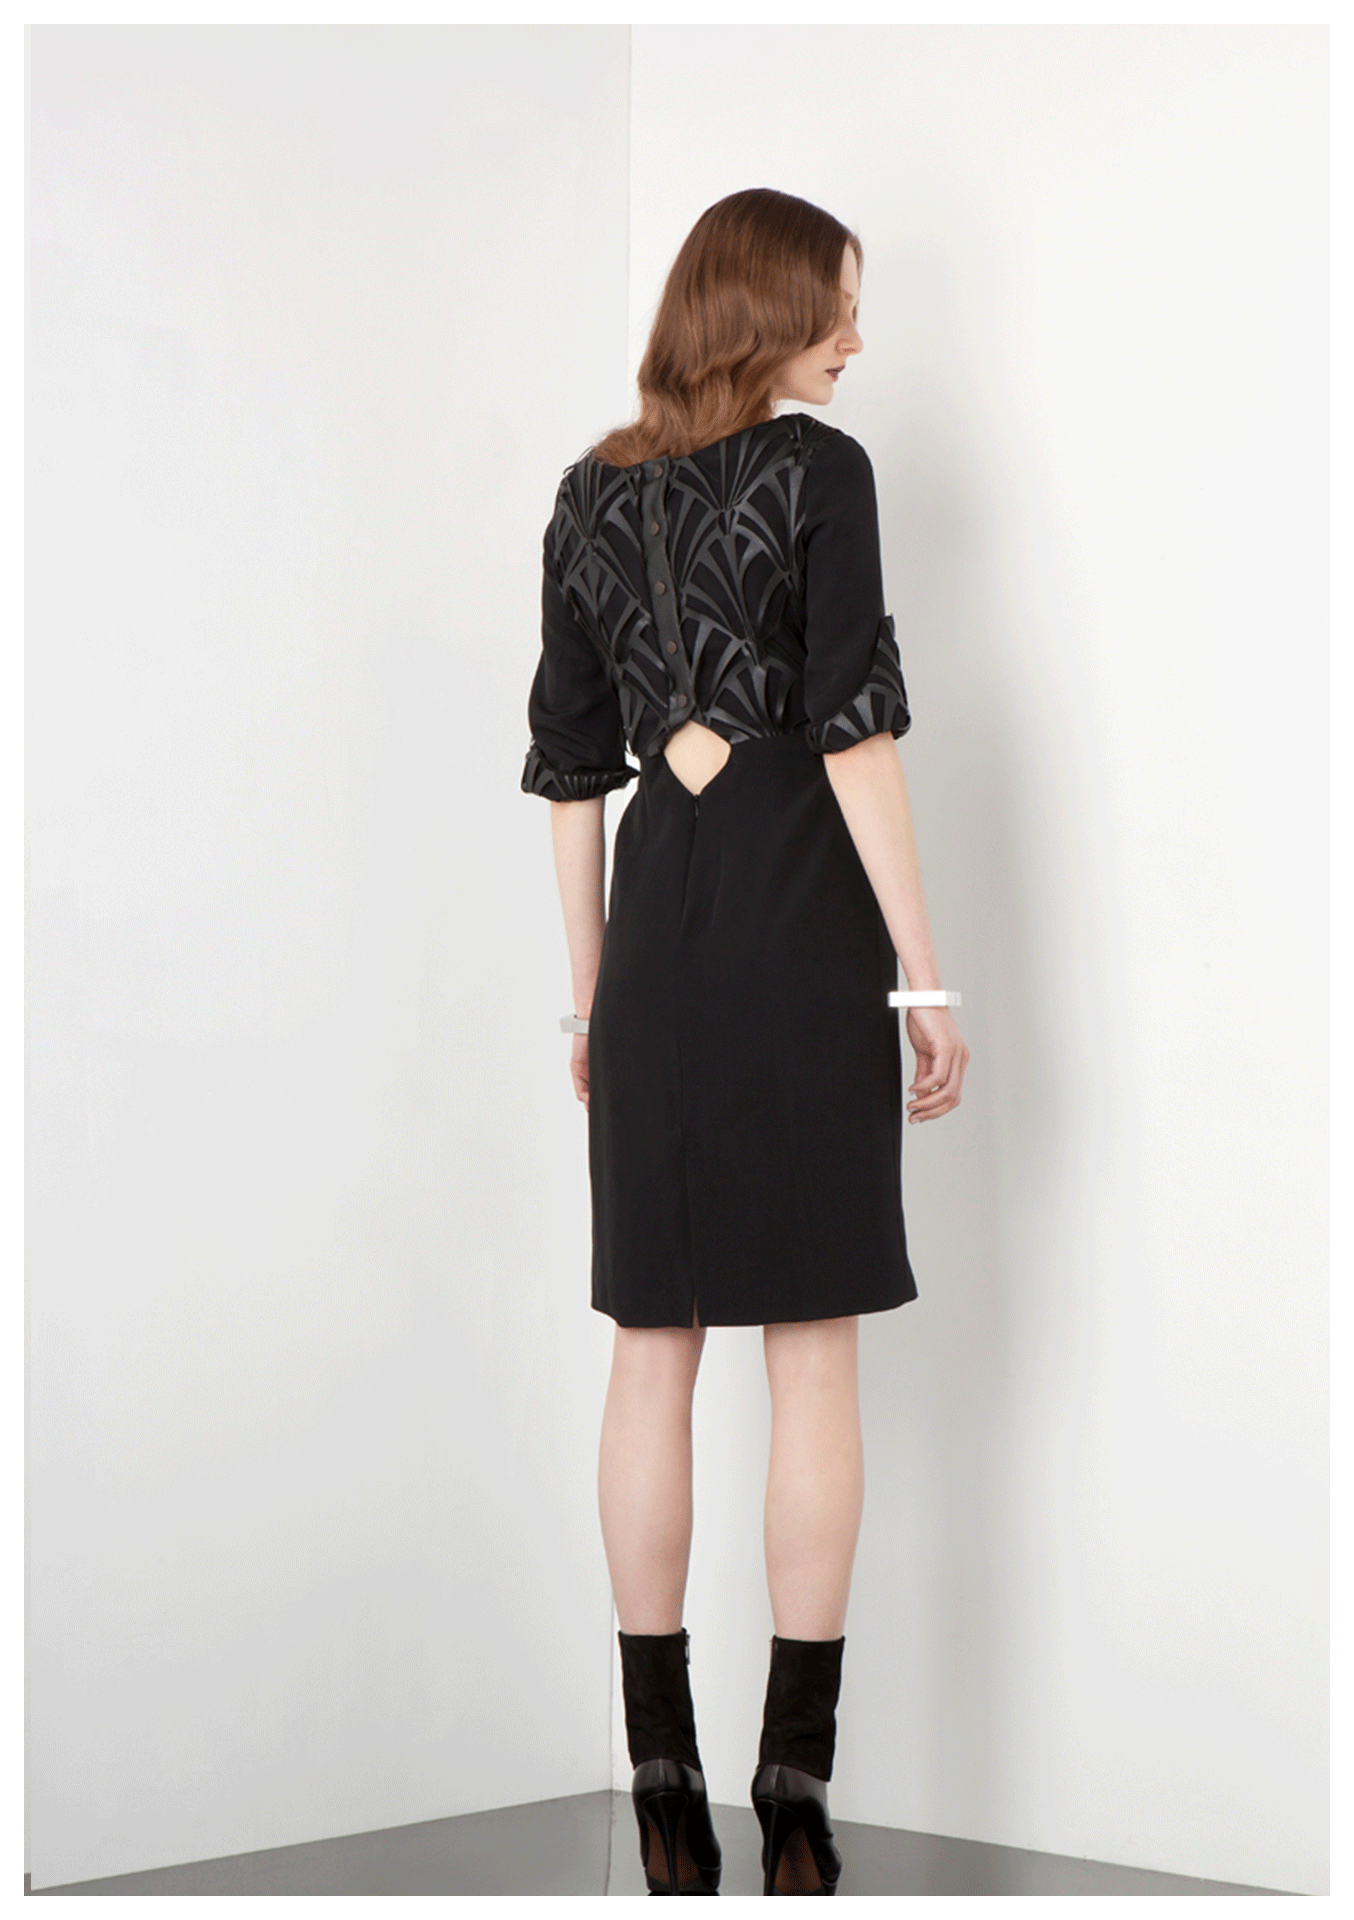 Dress with vegan leather at the back and sleeves, detailed with diamond shape cut-out and metallic snap-fastening placket